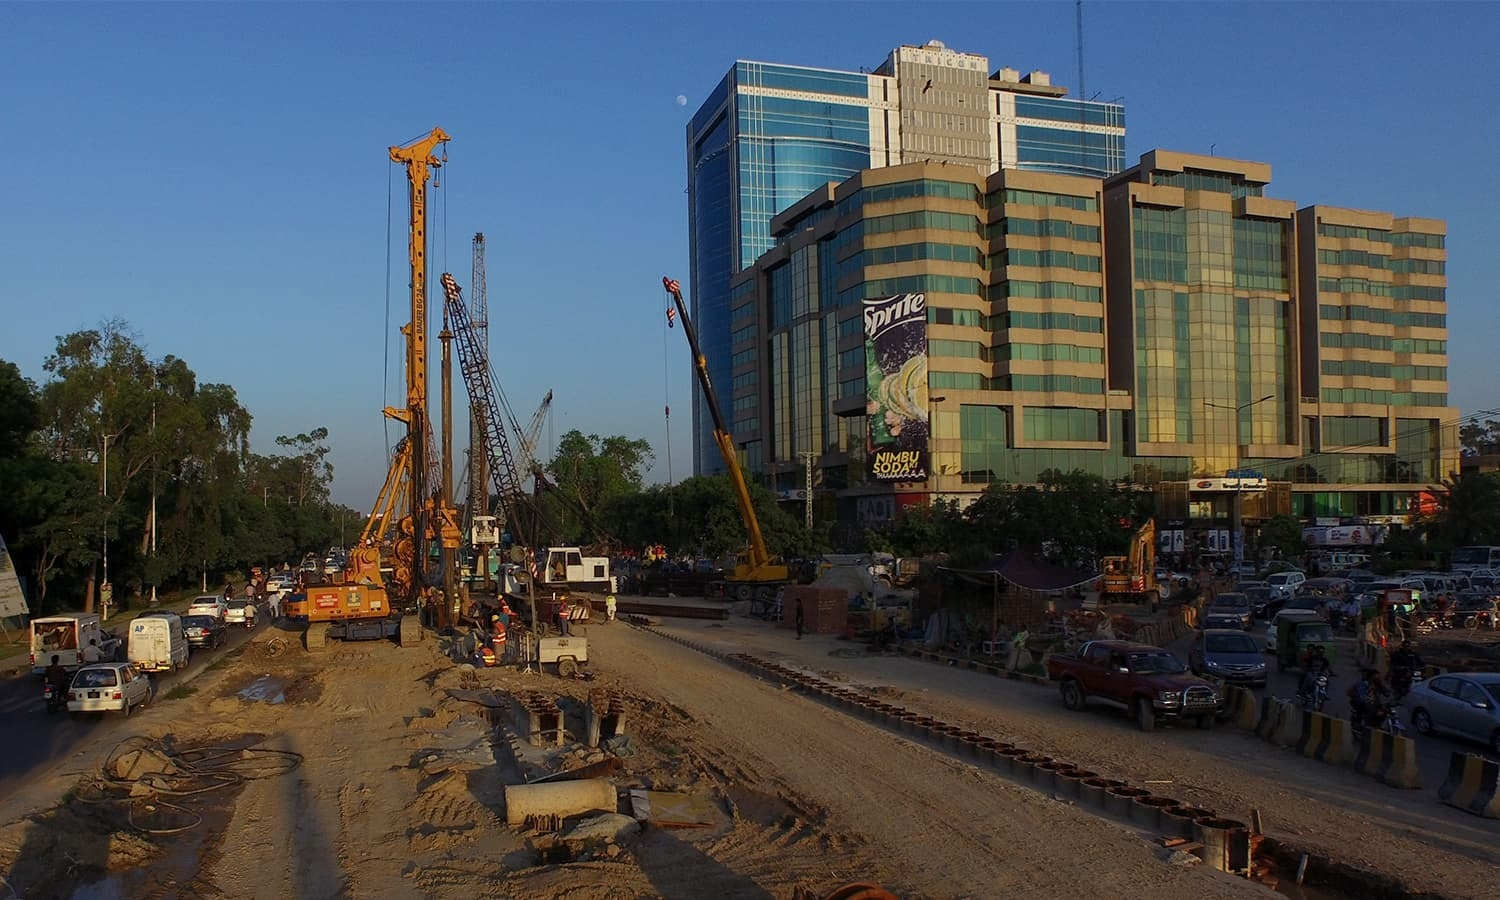 This file photo shows development work under way in Lahore. — Photo courtesy: Syed Muhammad Abubakar/File